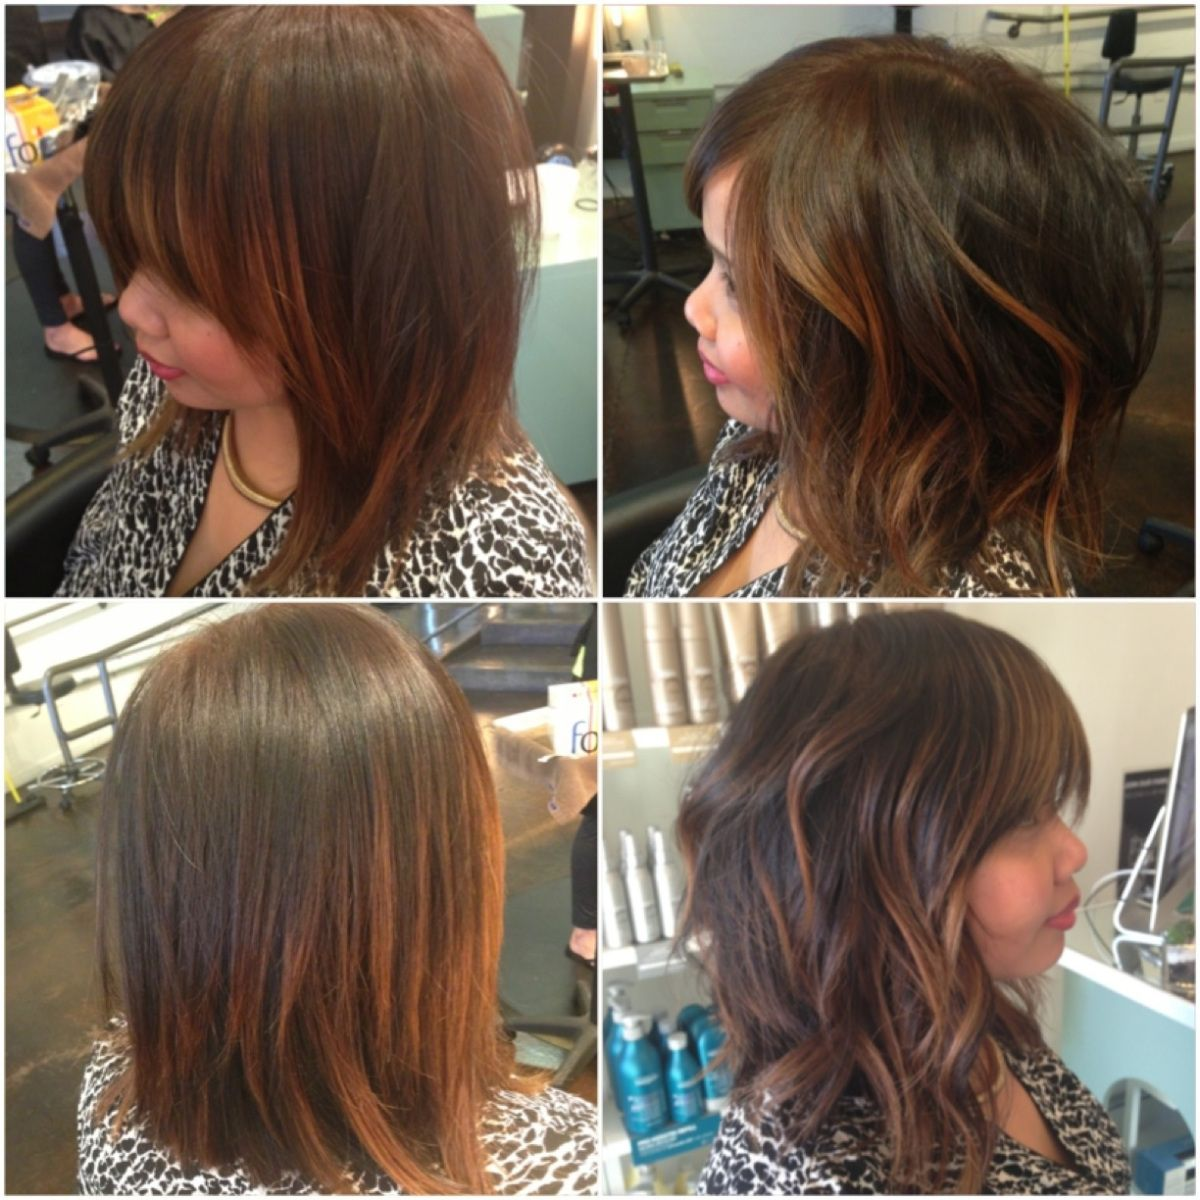 Long bob, lob, balayage, San Diego balayage specialist, hair color specialist San Diego, best colorist San Diego, best salon San Diego, San Diego hairstylist, Lived in color, lived in hair, the lab…